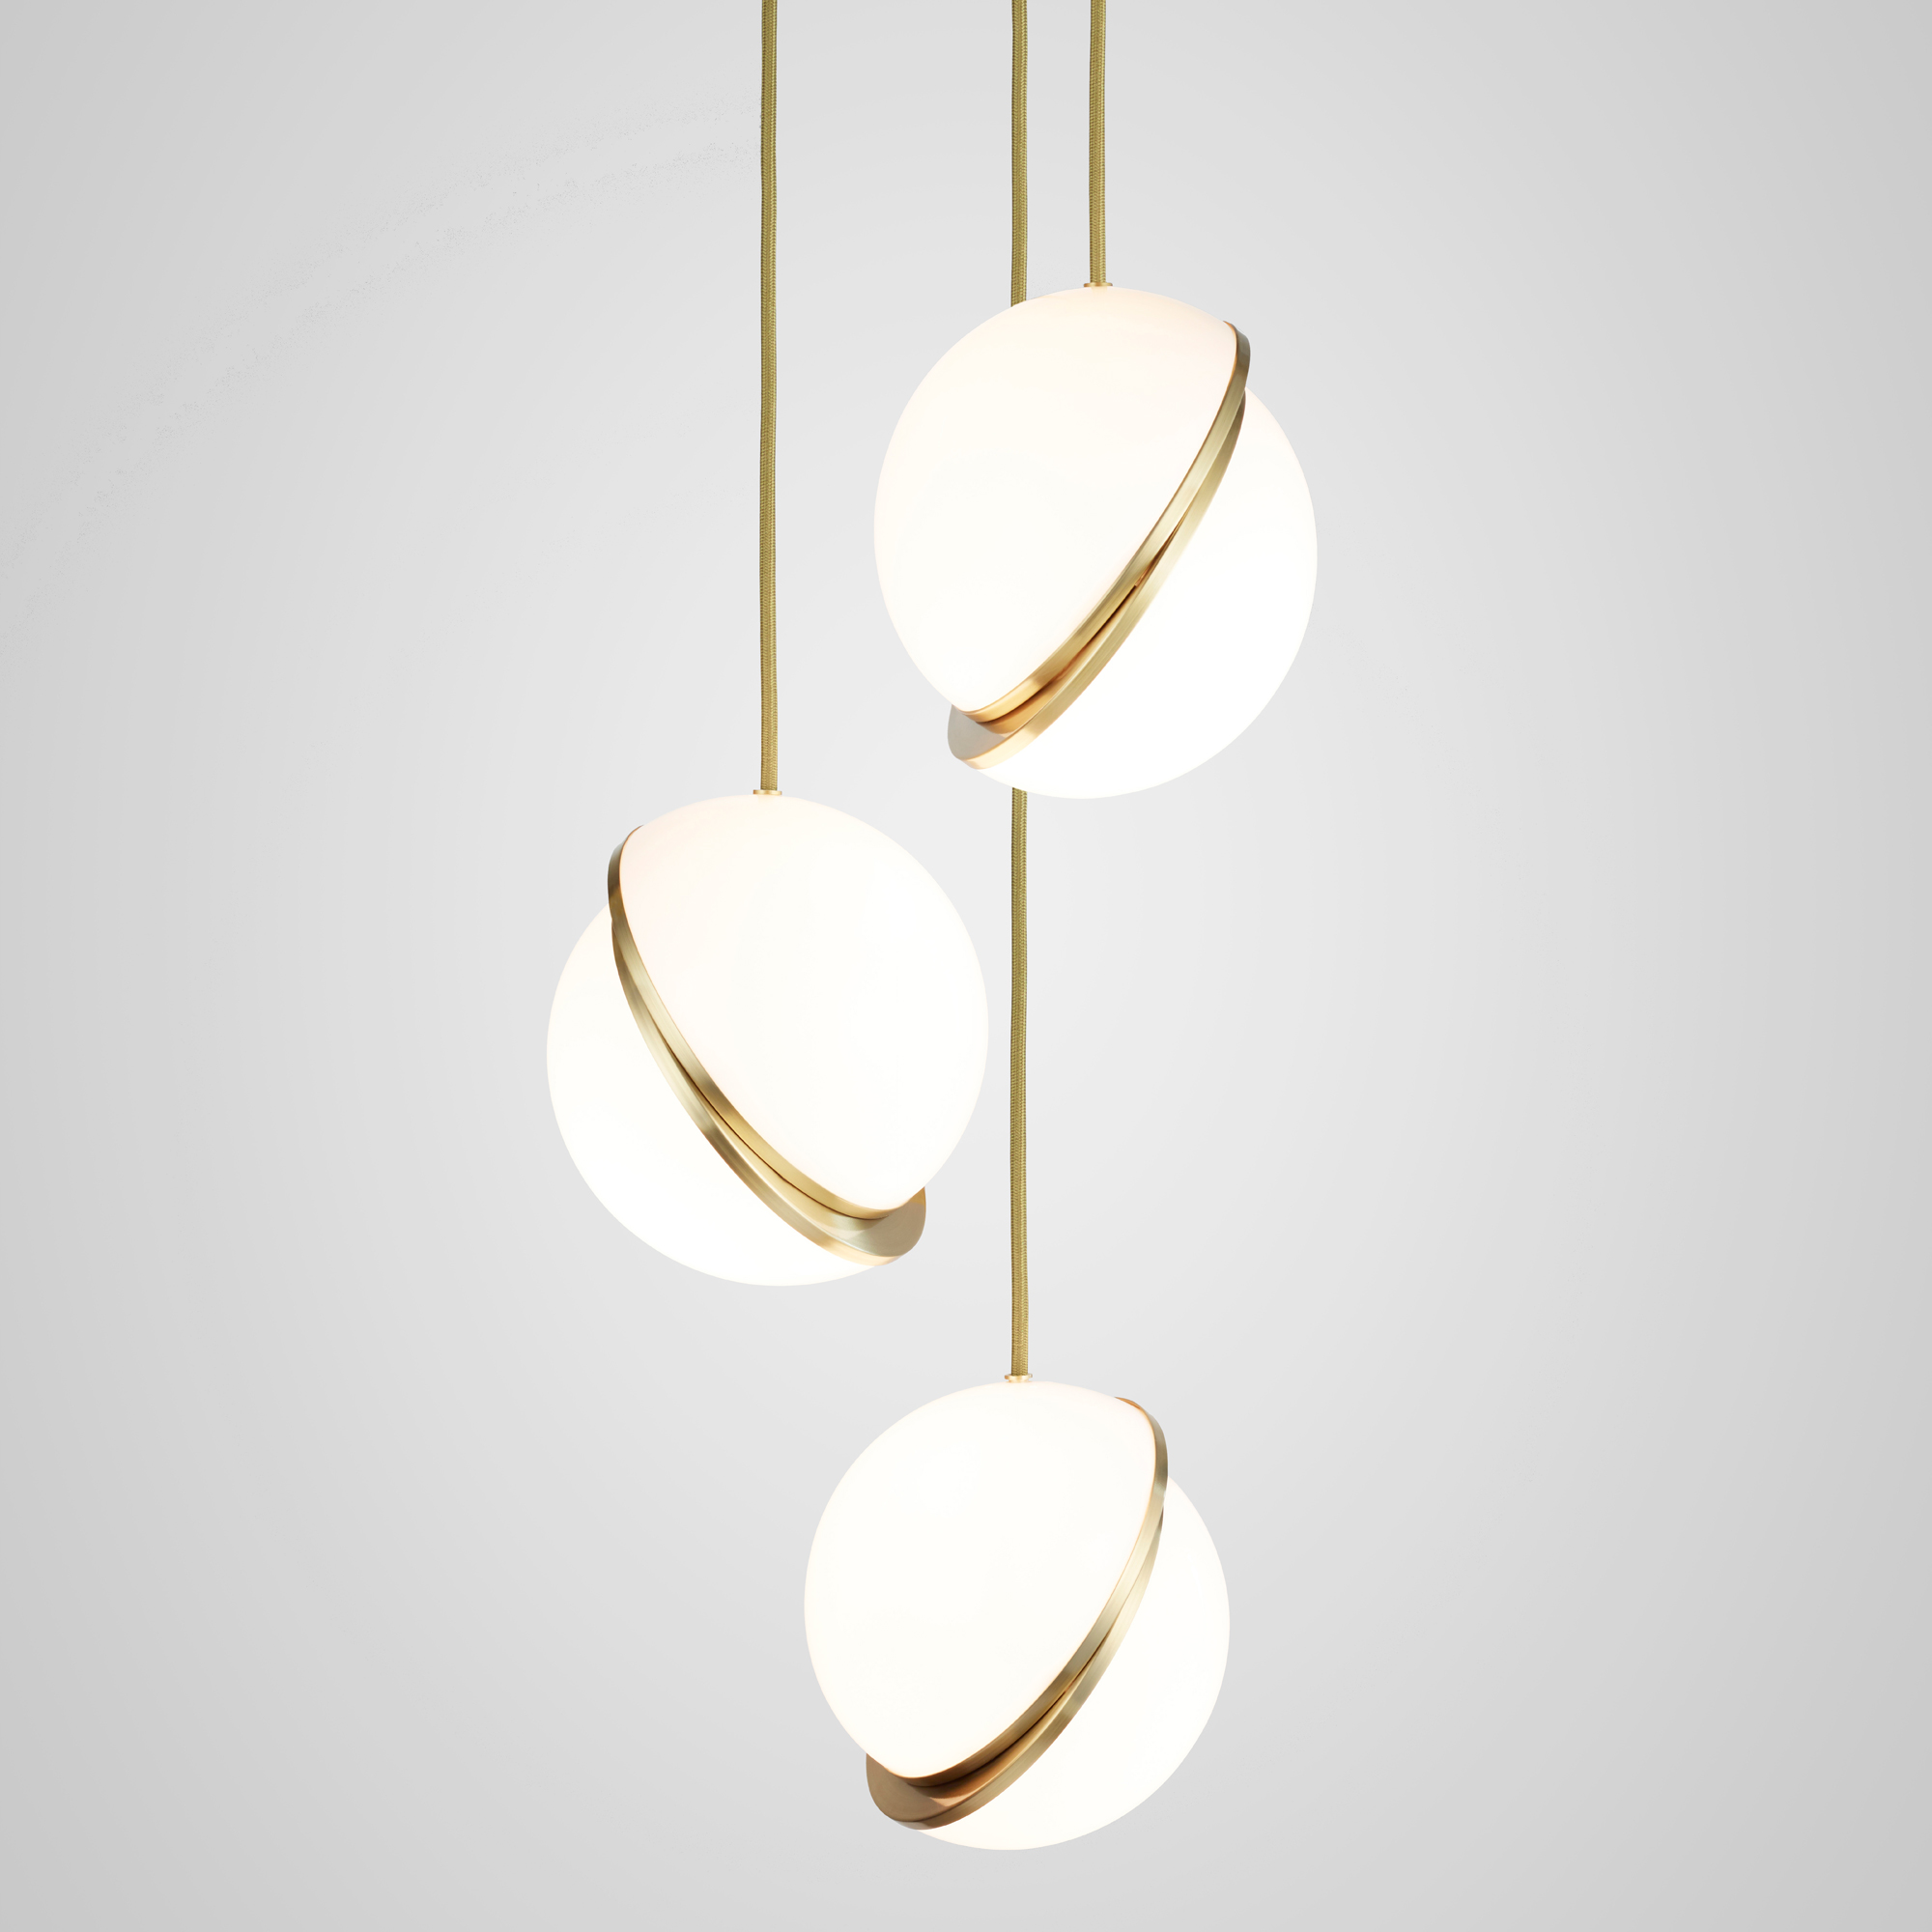 Awesome Mini Crescent Multi Light Pendant By Lee Broom | CRE0160 Images